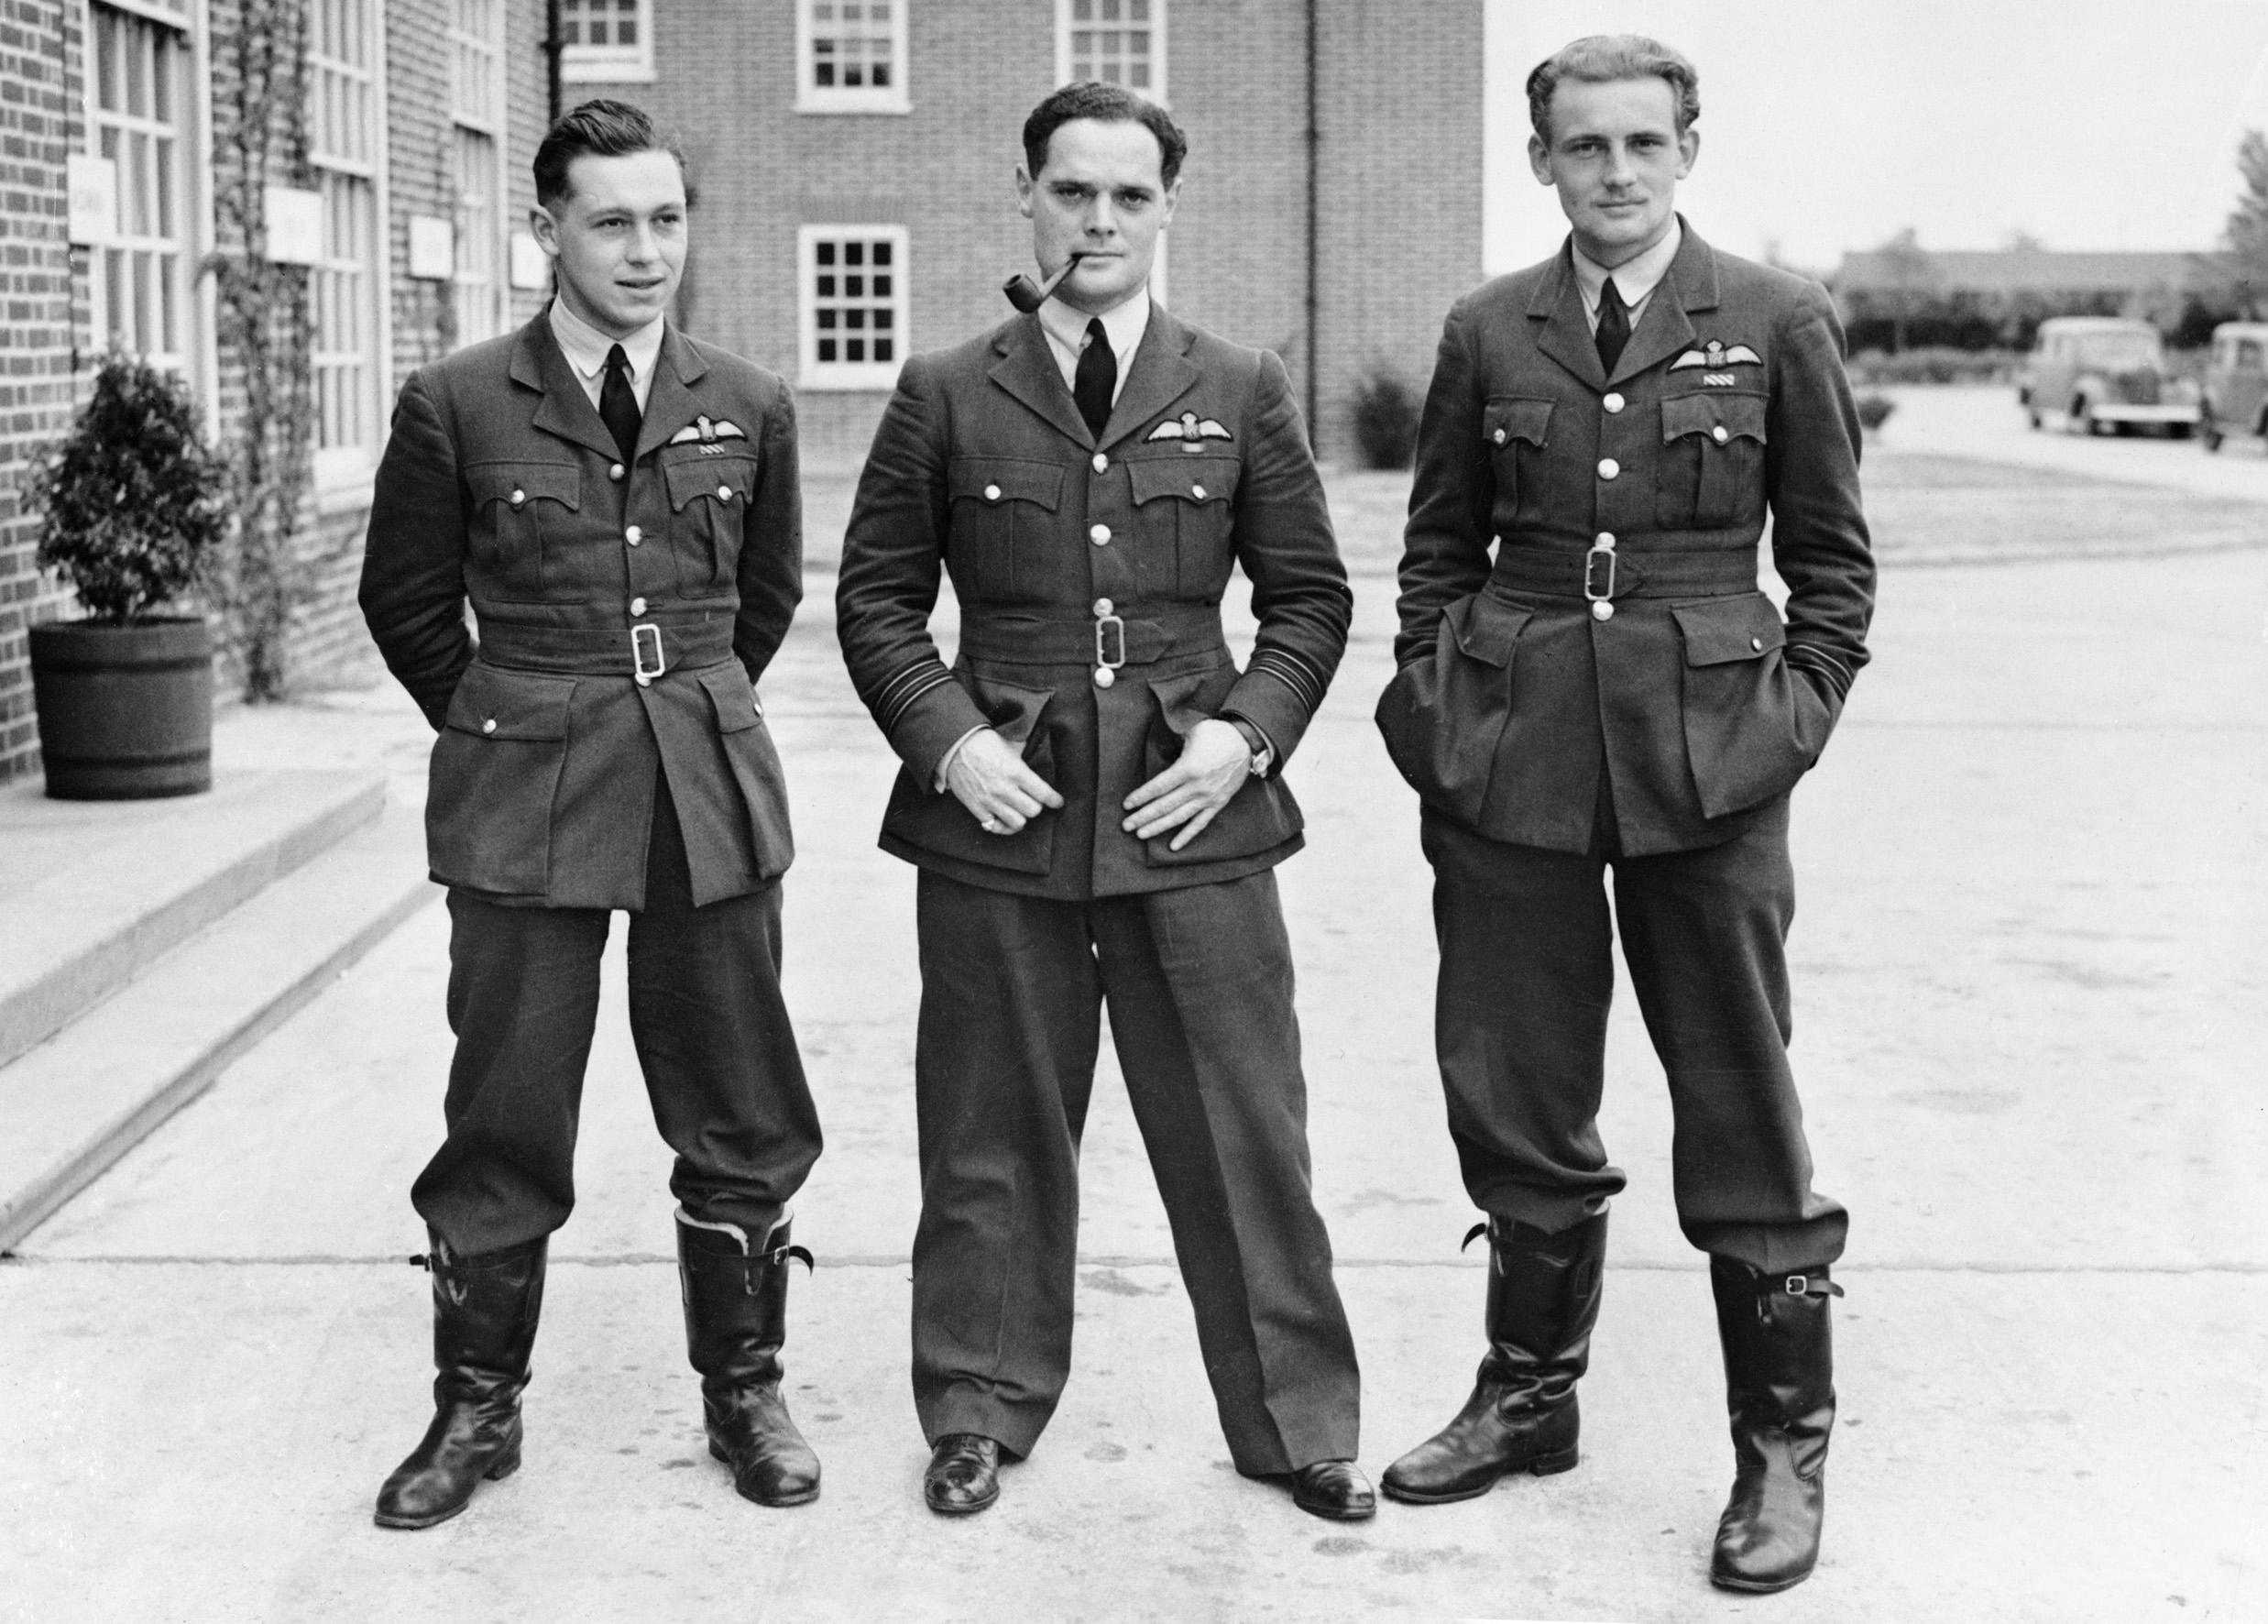 A black and white photo of three men in military uniforms.